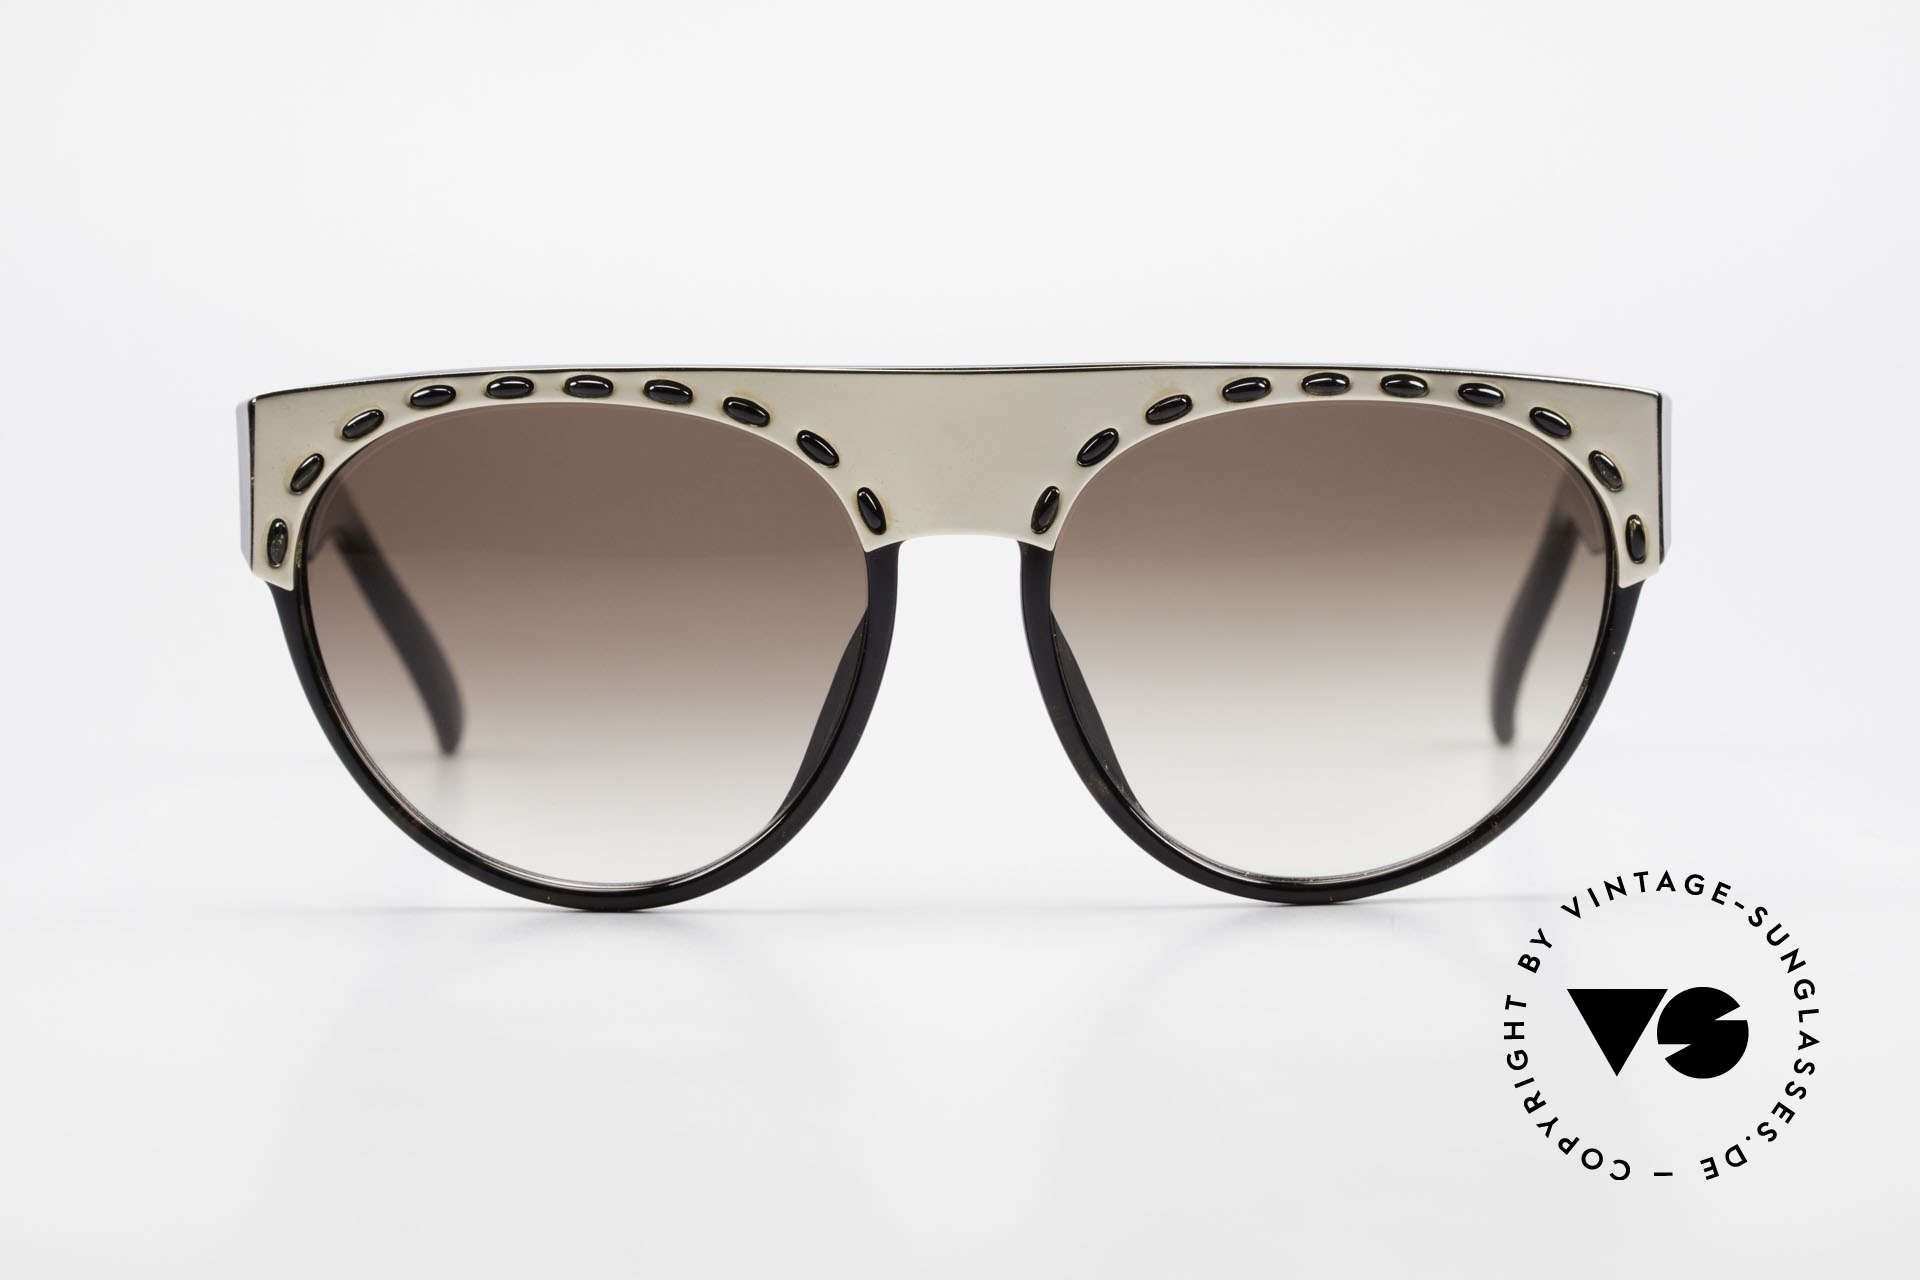 Christian Dior 2437 Ladies Sunglasses 80's Vintage, unique play of colors (check the pictures); true vintage, Made for Women